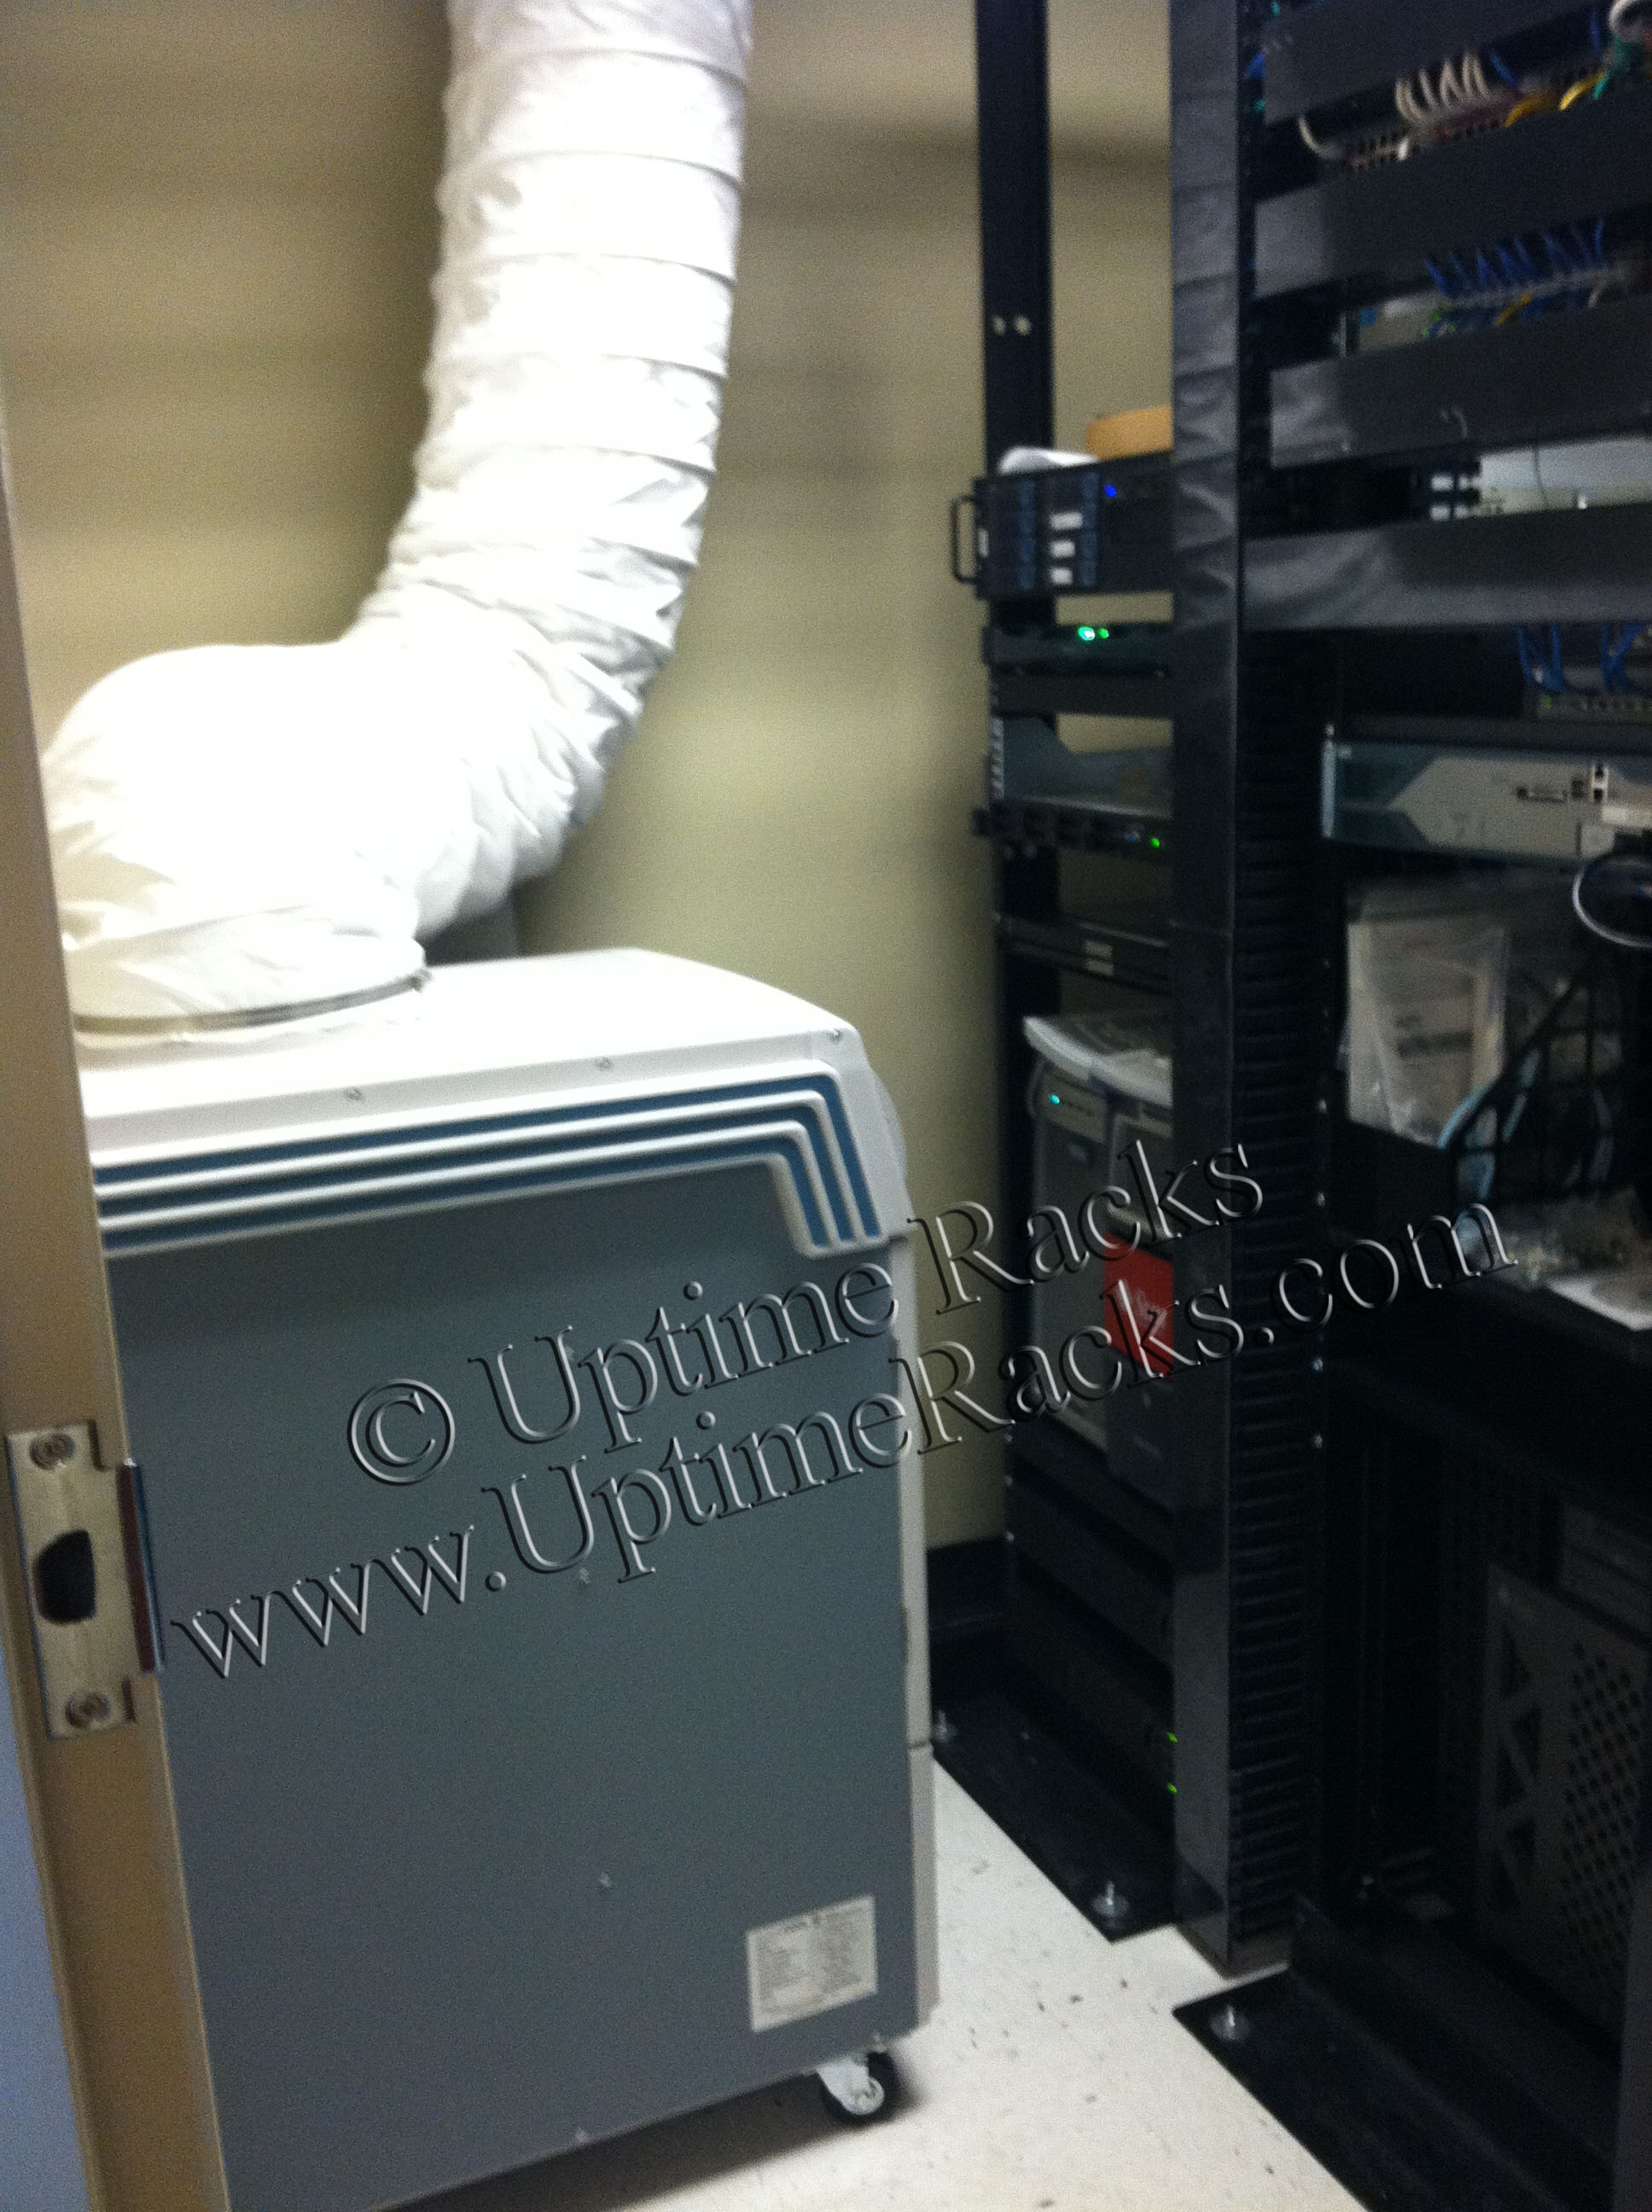 cleaning great cabinet atl they pin network did up data job a refresh center server design